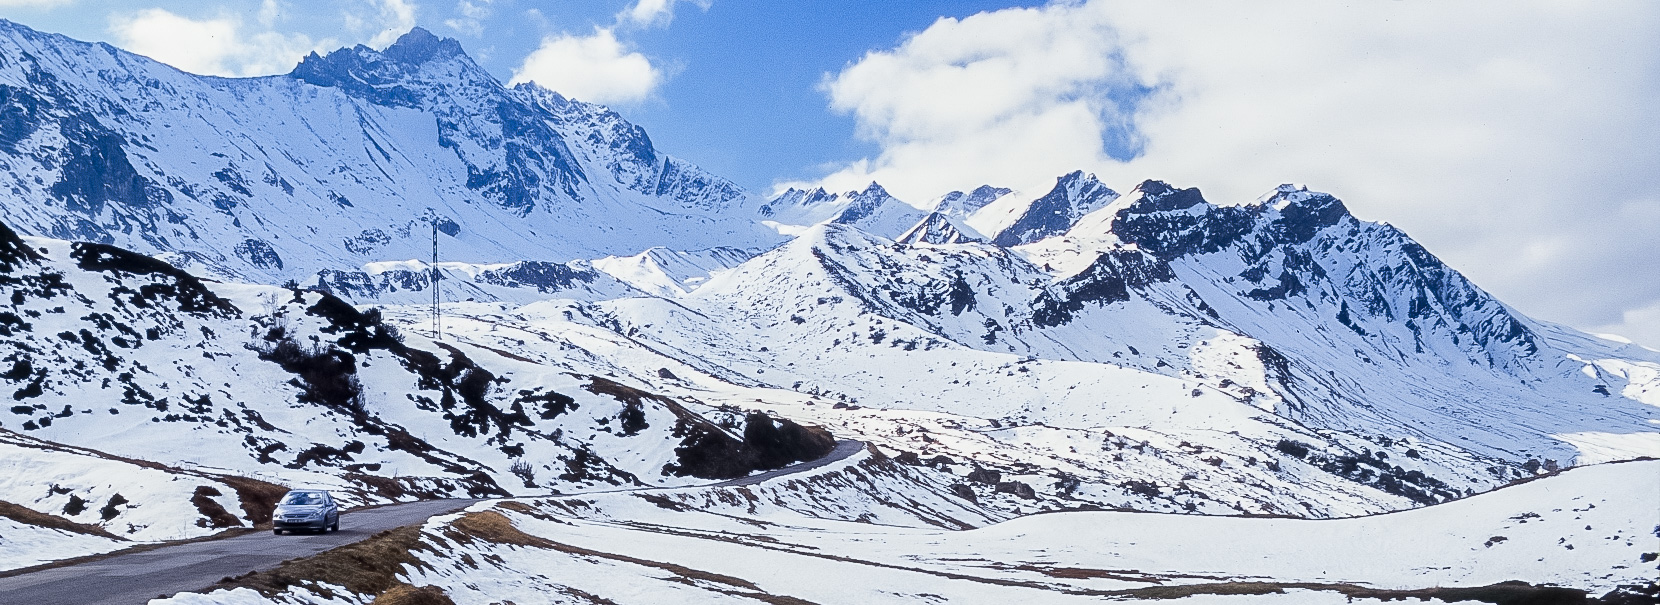 Wide view of Route des Grandes Alpes among snow-covered mountains